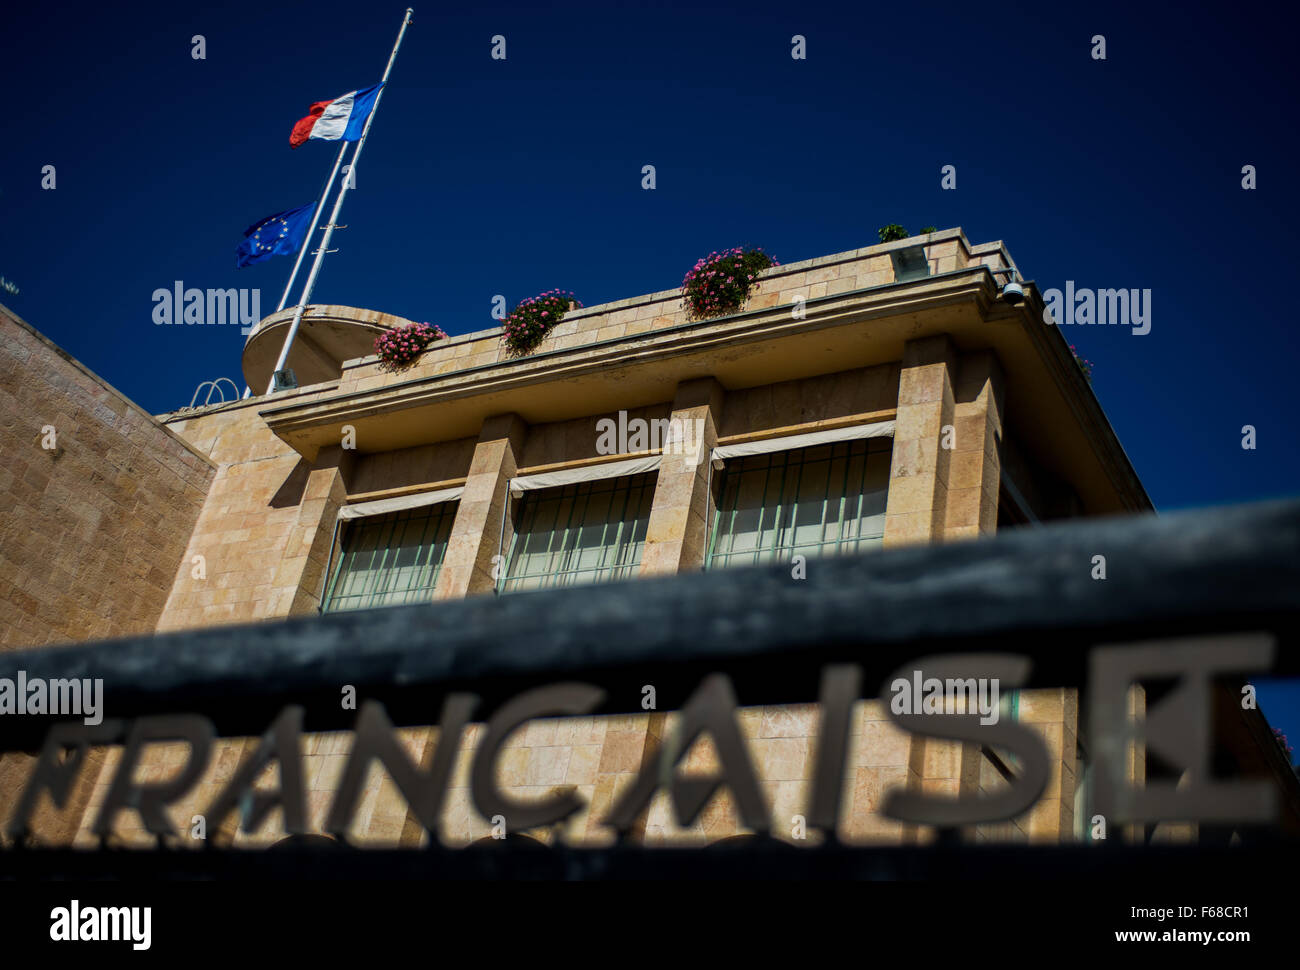 Jerusalem. 14th Nov, 2015. A French national flag and an European Union flag fly at half mast at Consulate General of France in Jerusalem to mourn the victims of a series of attacks in Paris, on Nov. 14, 2015. Credit:  Li Rui/Xinhua/Alamy Live News Stock Photo